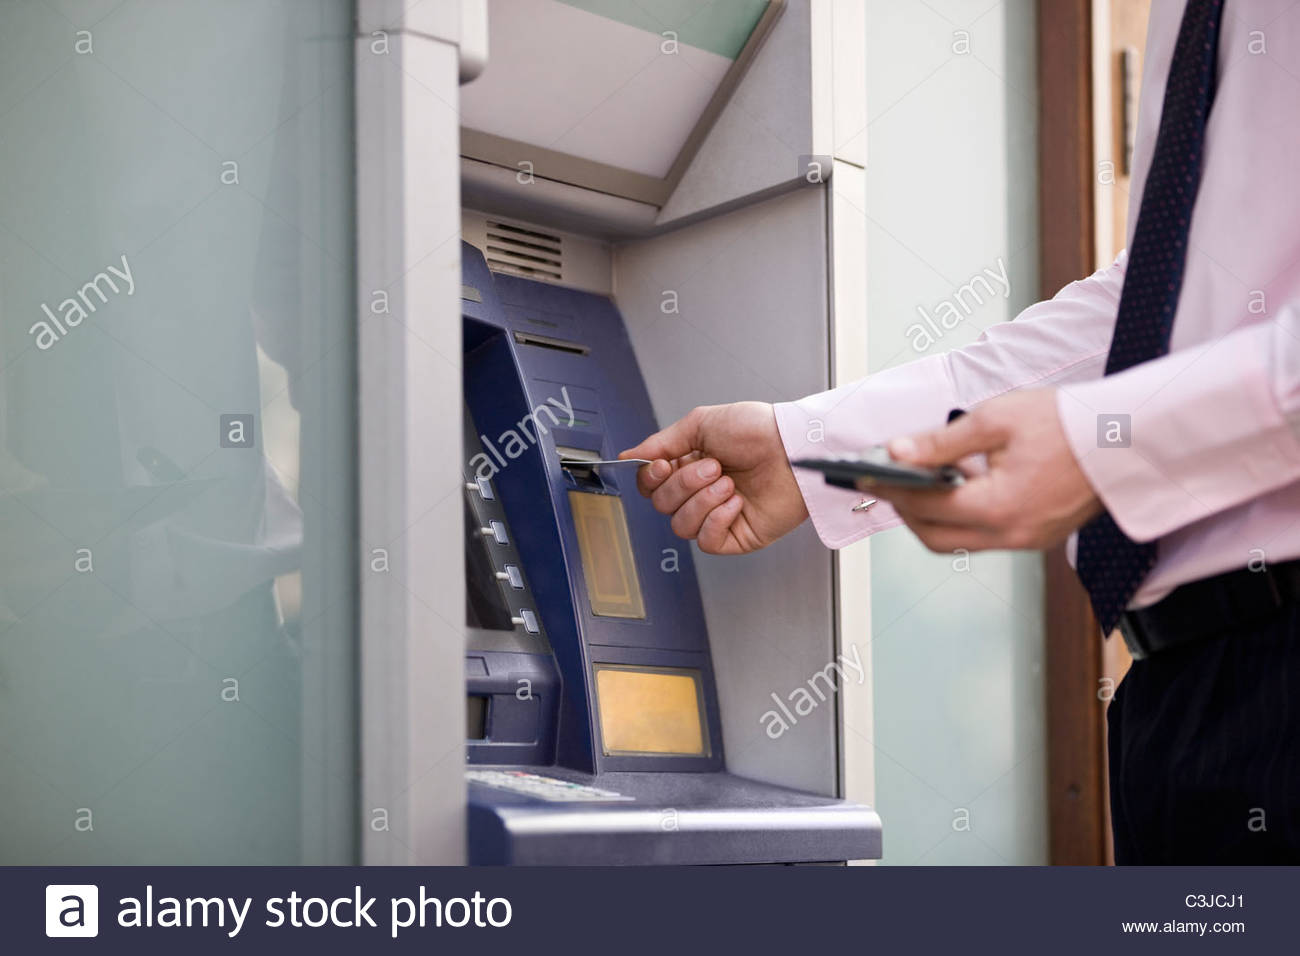 Automatic Teller Stock Photos Amp Automatic Teller Stock Images Alamy